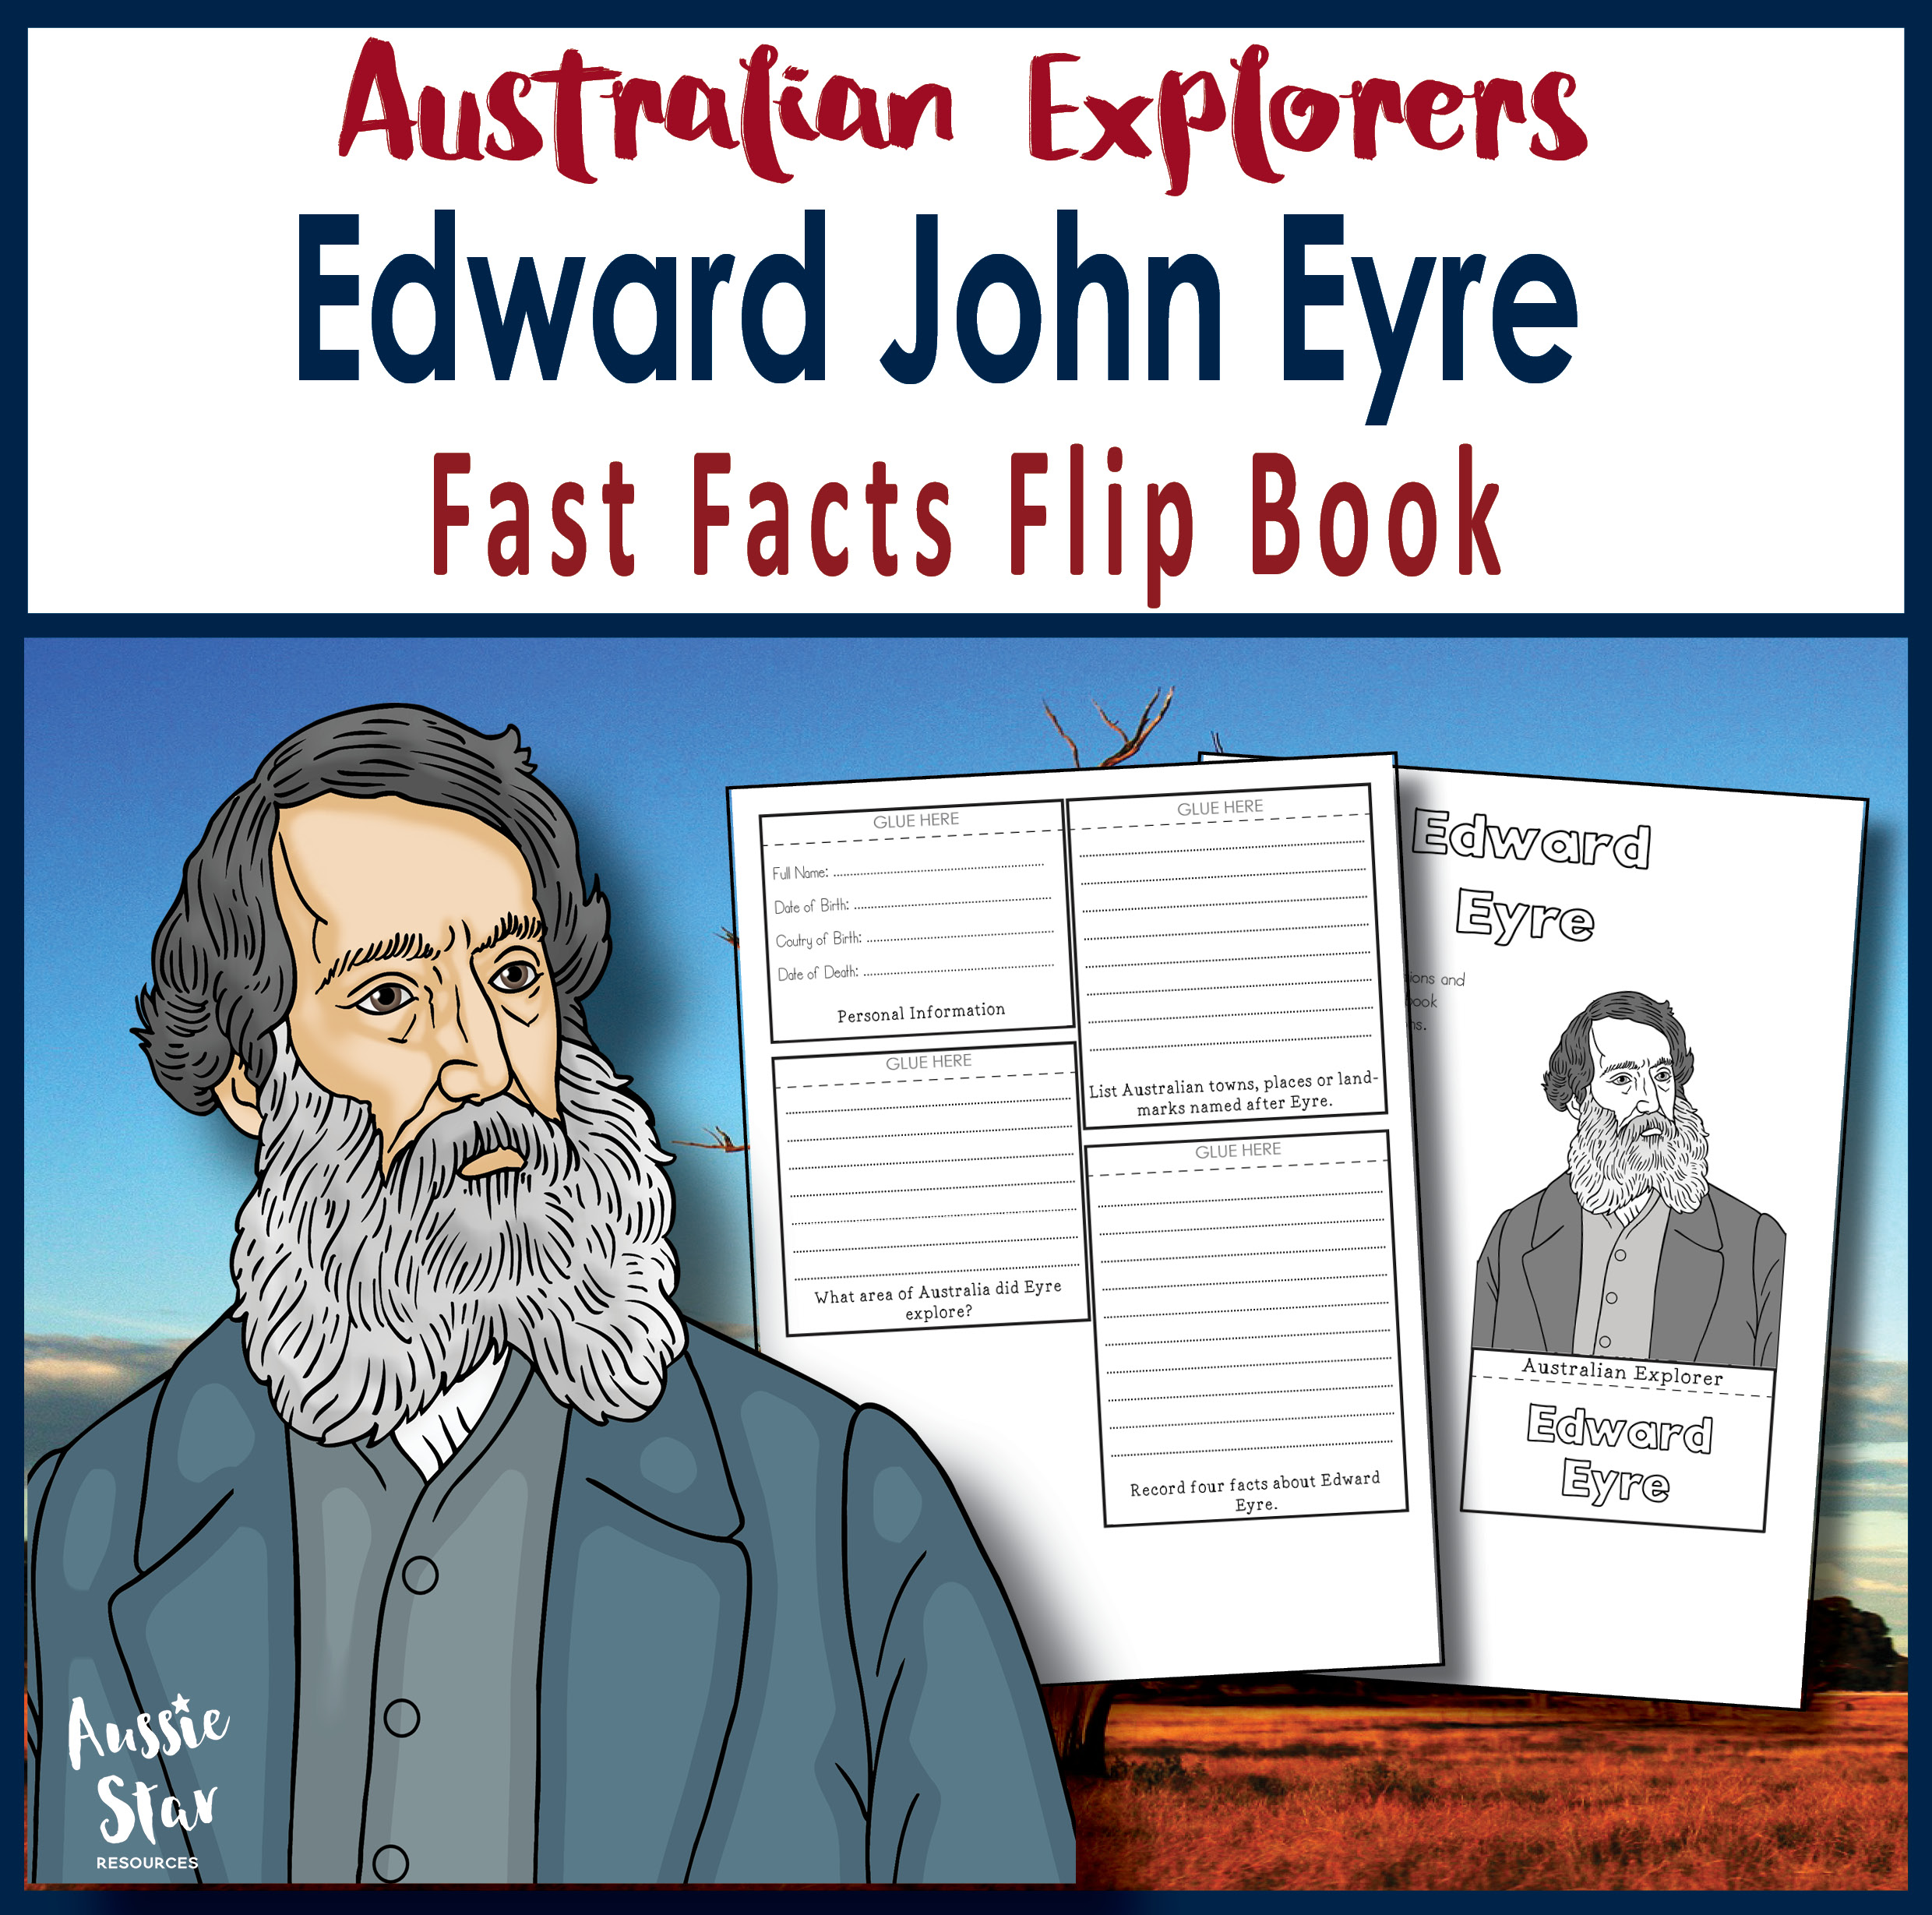 Edward Eyre fast facts flip book